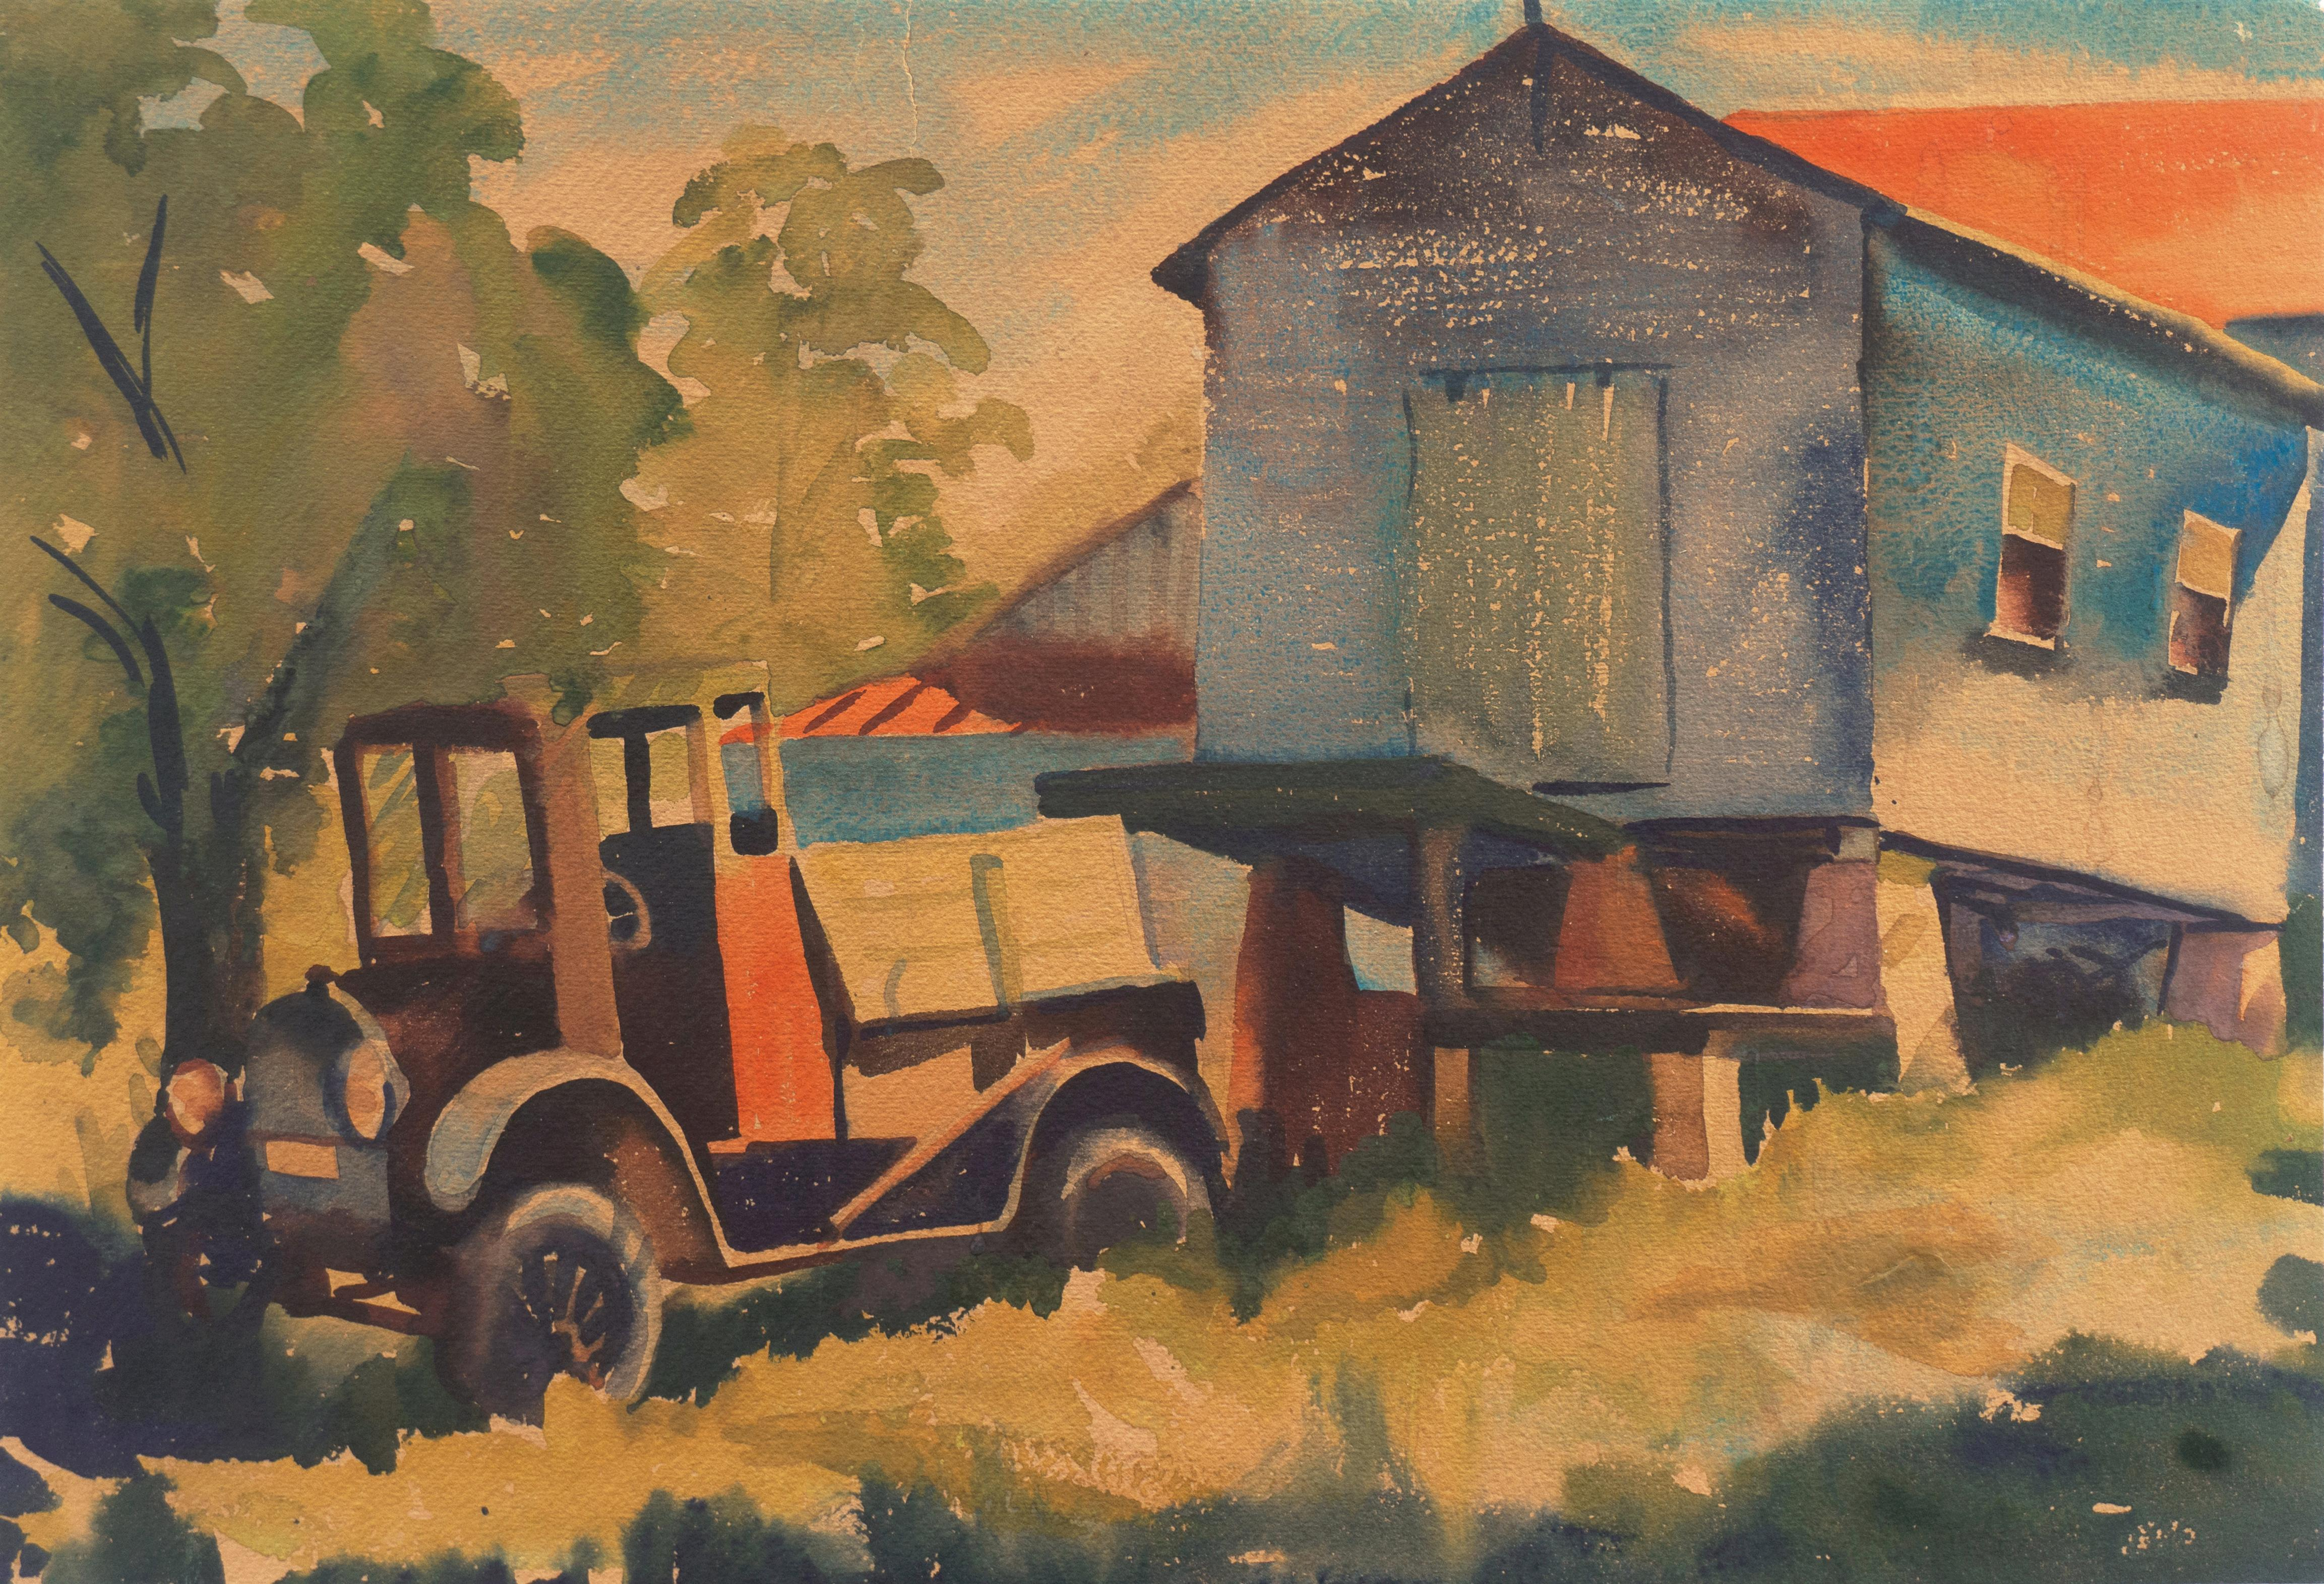 'Old Reliable', Early American Modernist, Jalopy, Model T Ford Flatbed Truck